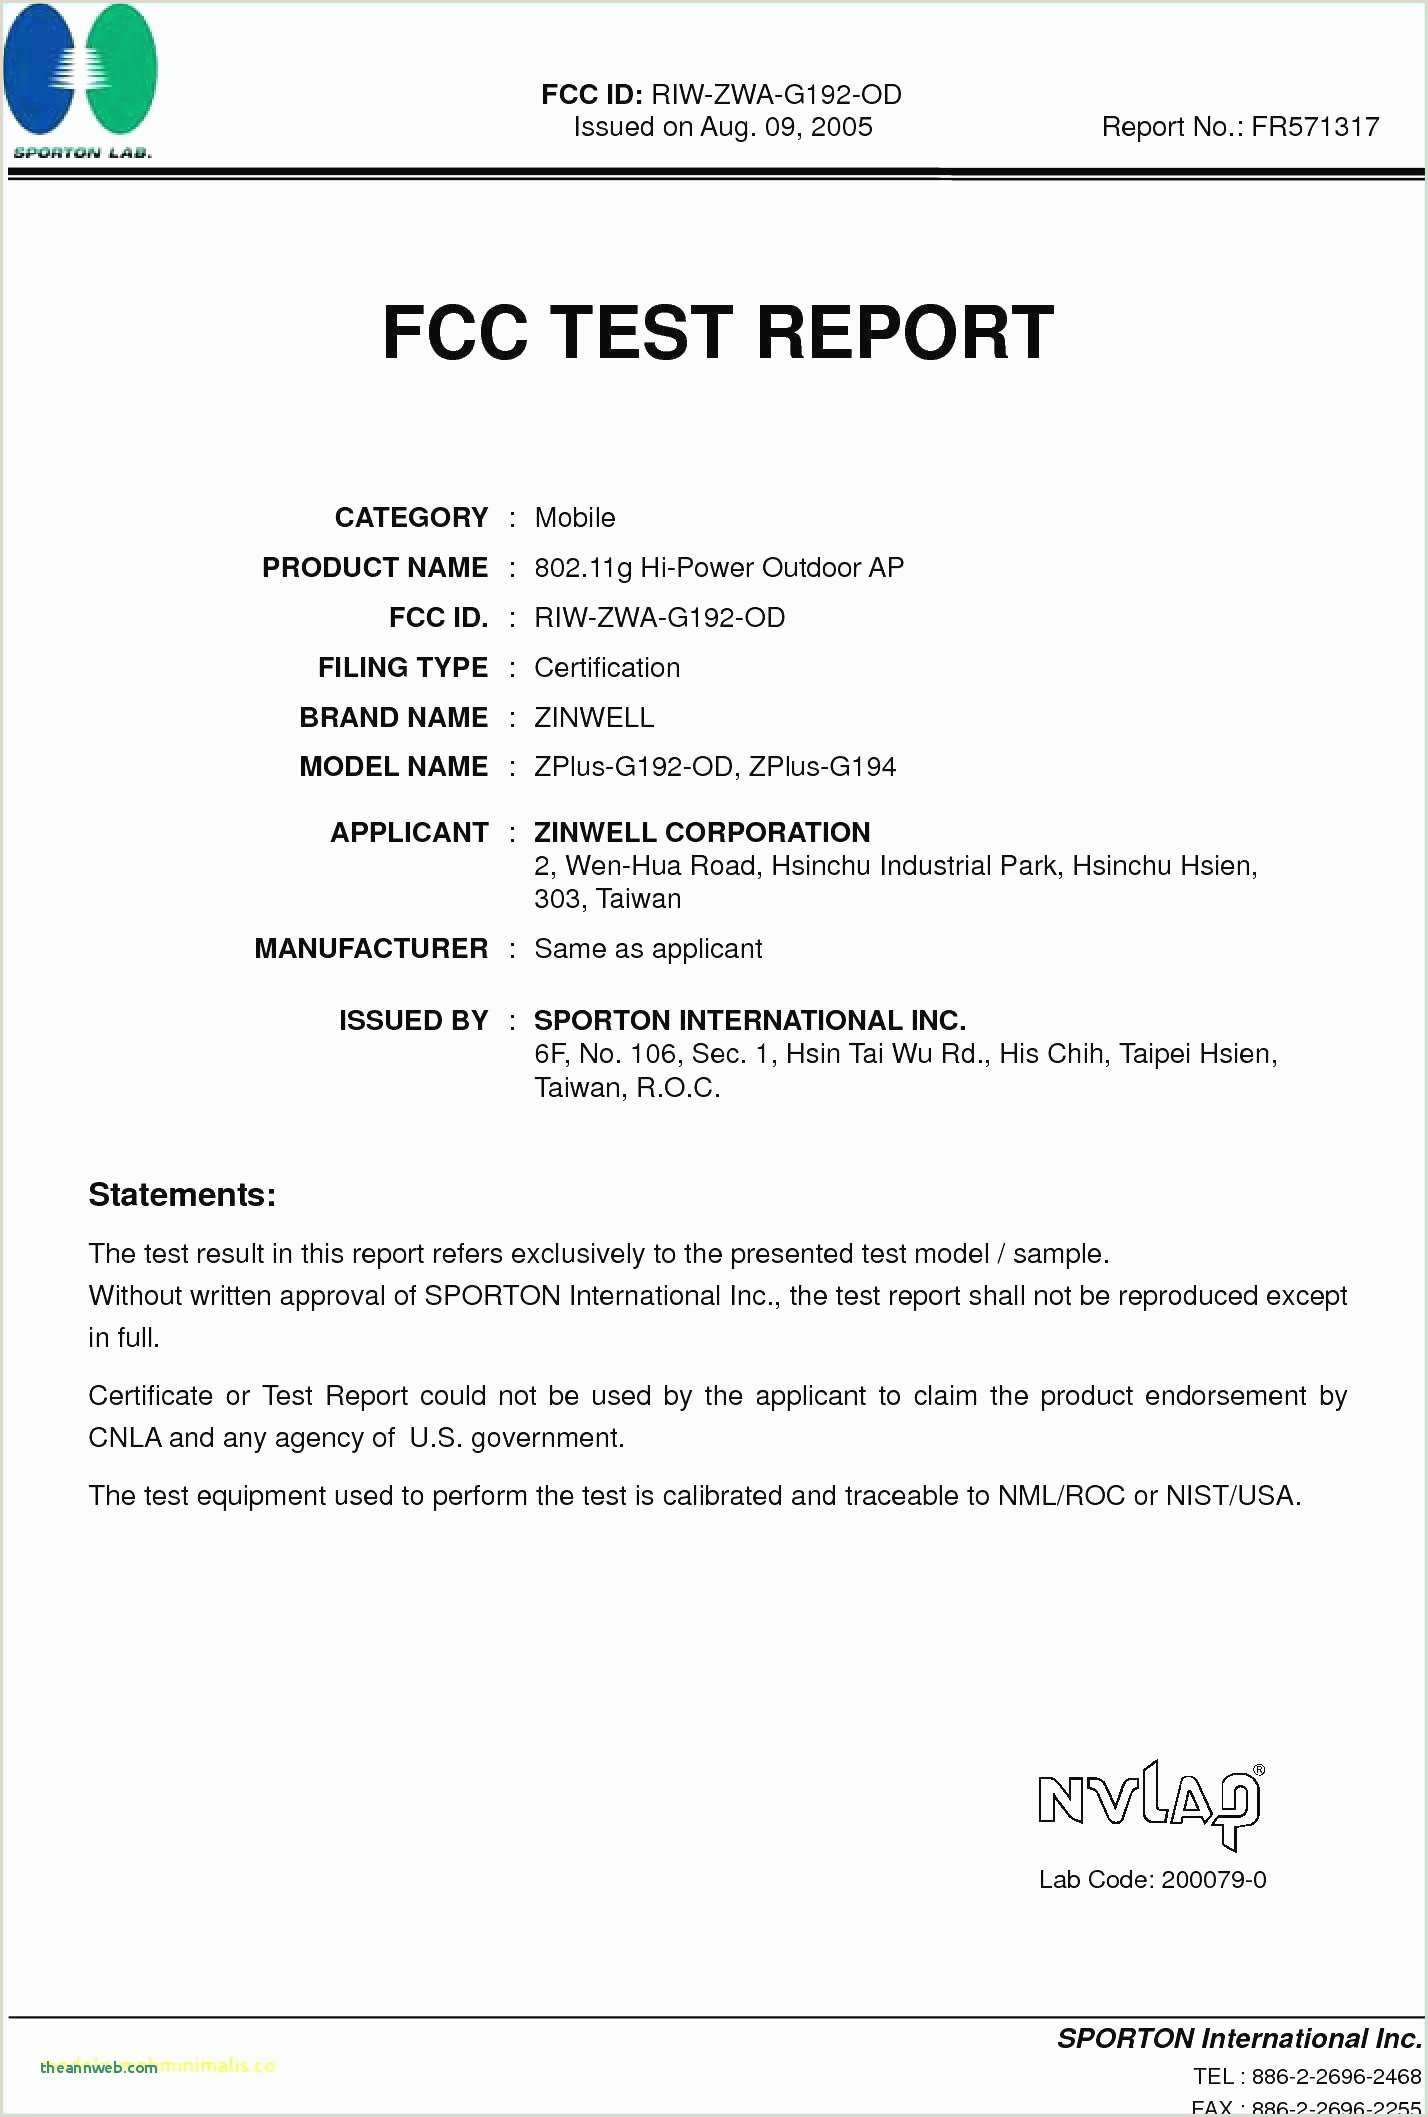 Fresher Resume format for Manual Testing software Testing Resume Sample Best software Testing Resume